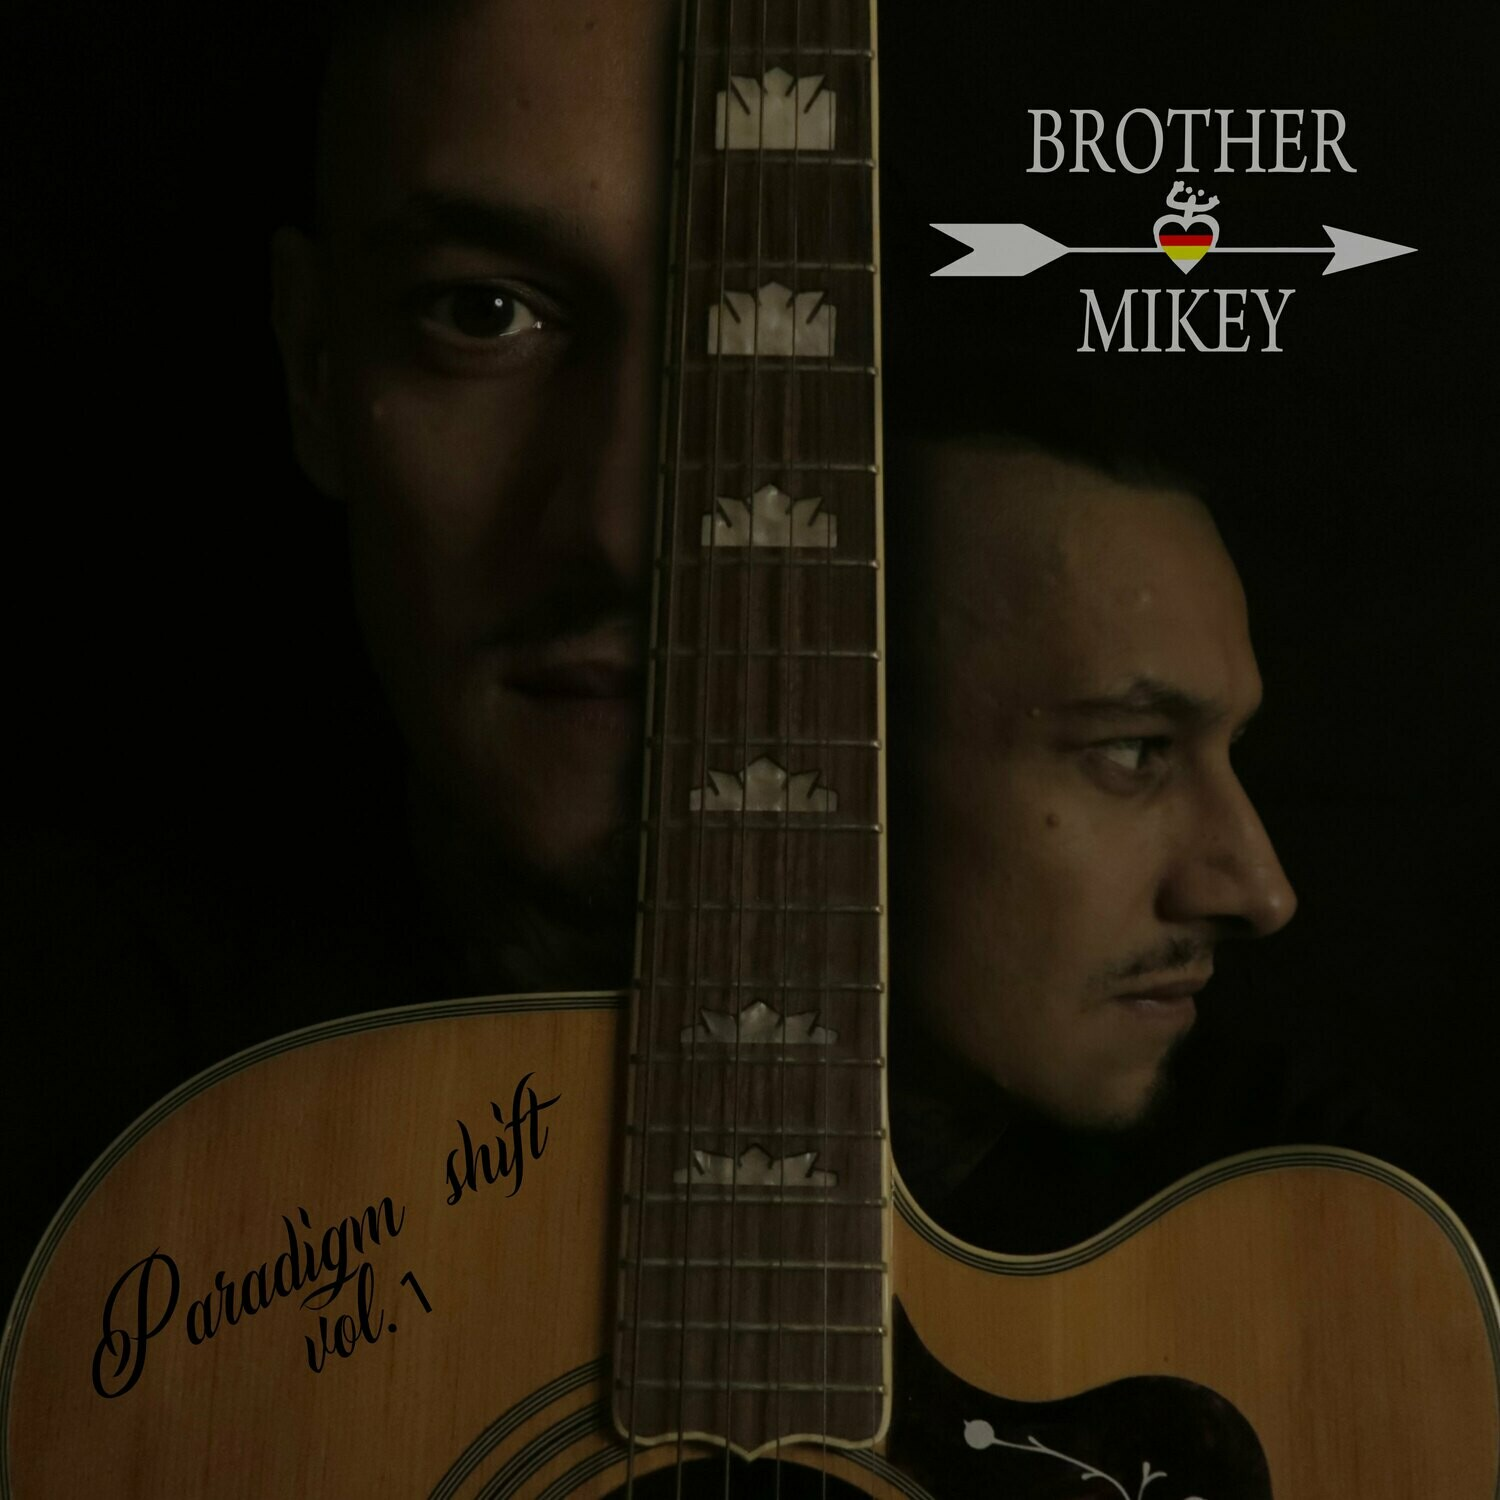 """""""Paradigm shift vol1"""" cd by Brother Mikey"""